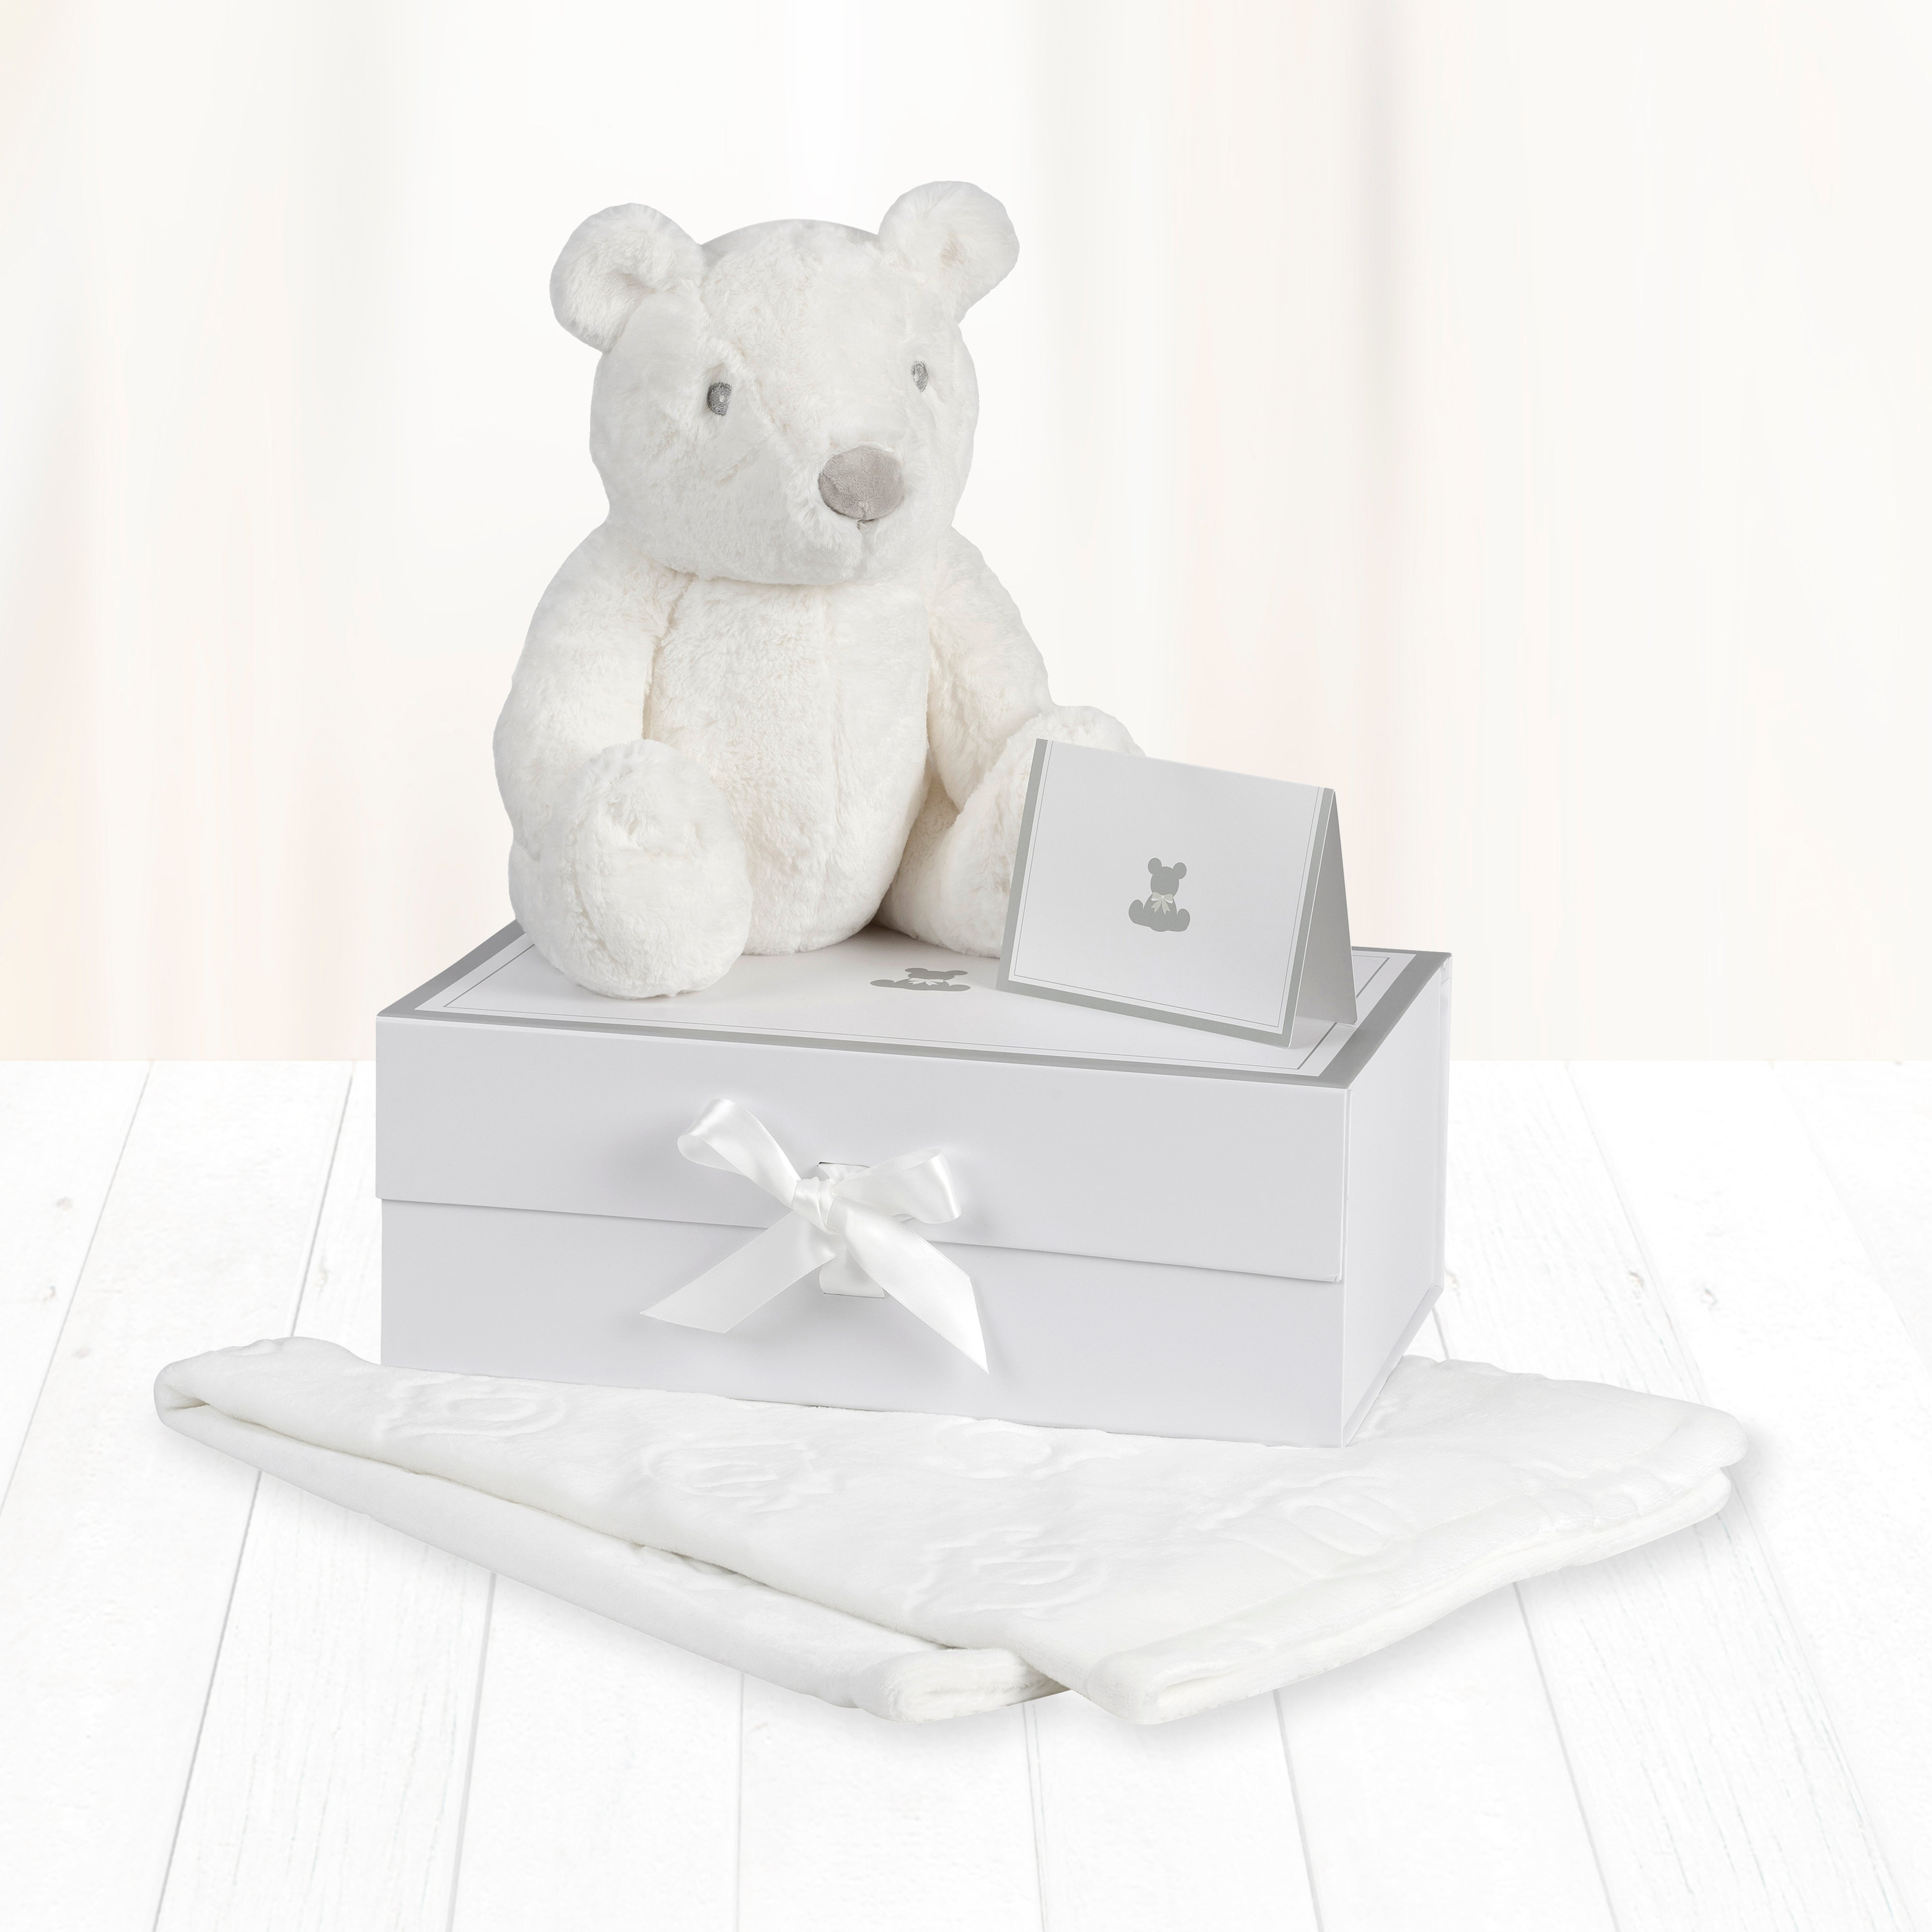 The Cuddle Baby Gift Hamper